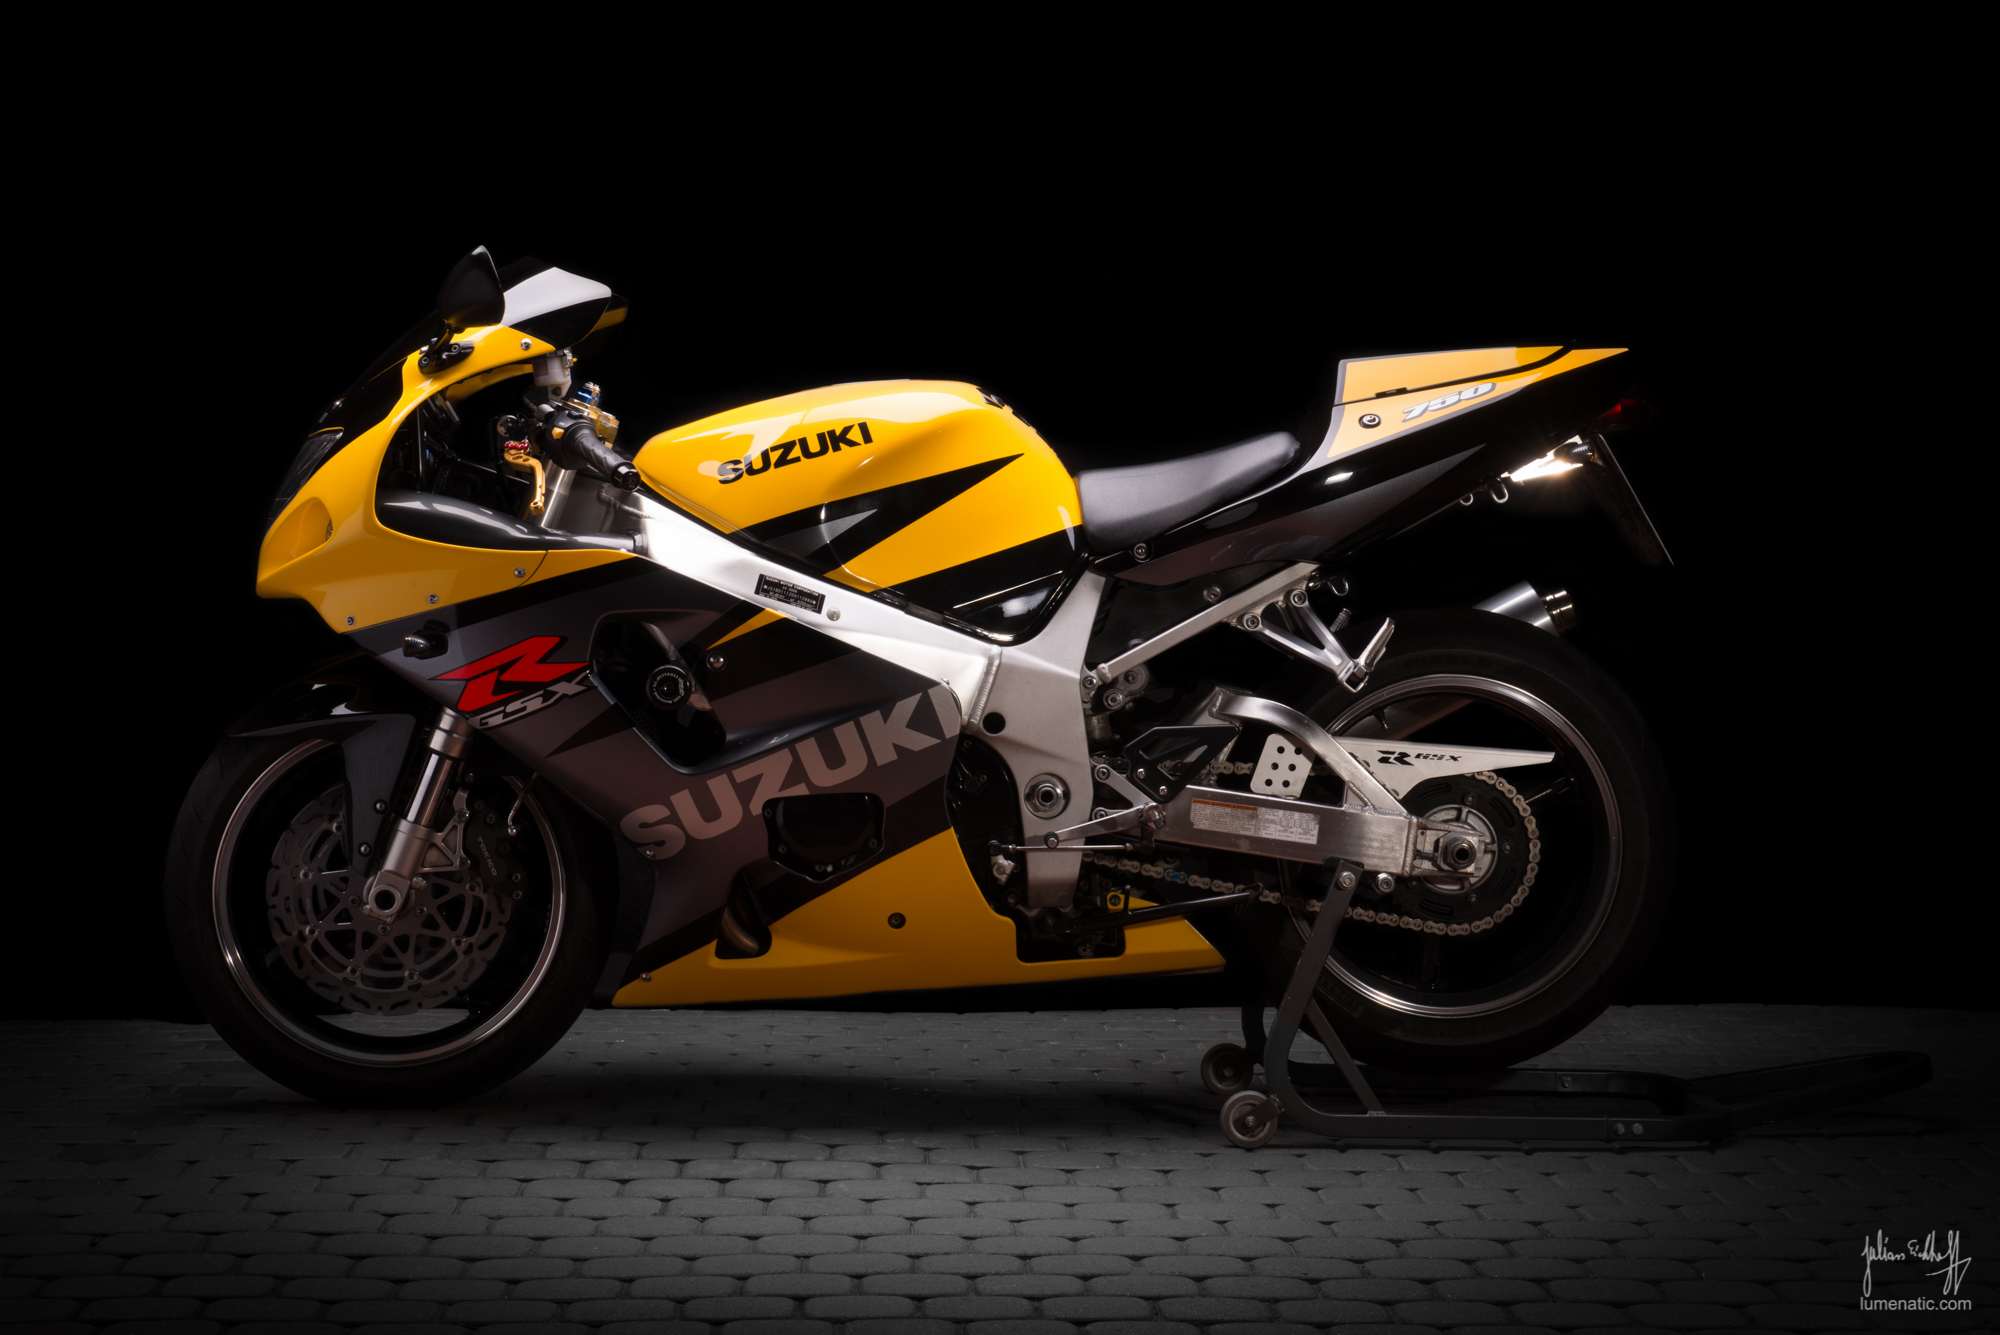 Motorbike Photography again: Suzuki GSX-R 750